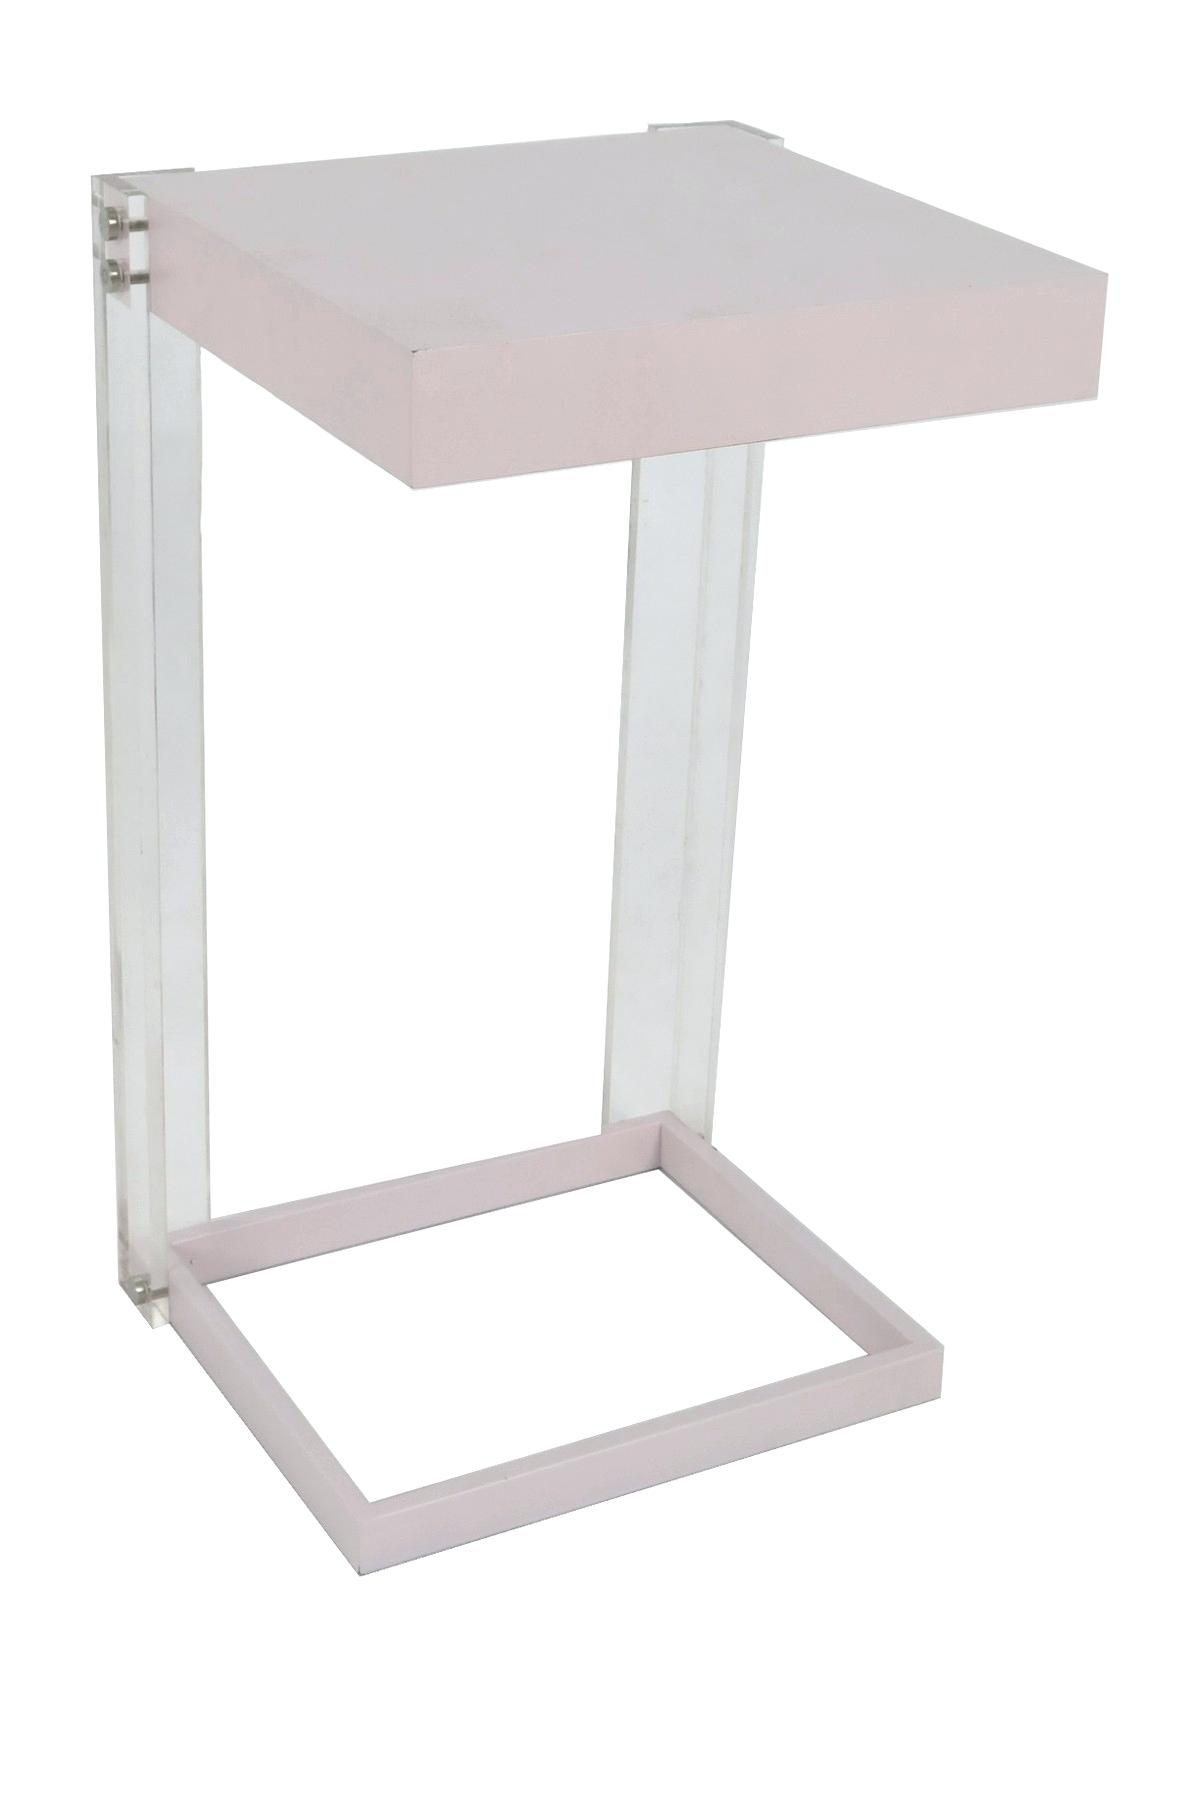 pink accent table wonderful with carols home acrylic wood light floating target marble threshold copper related post summer clearance patio furniture metal dining chairs mirror